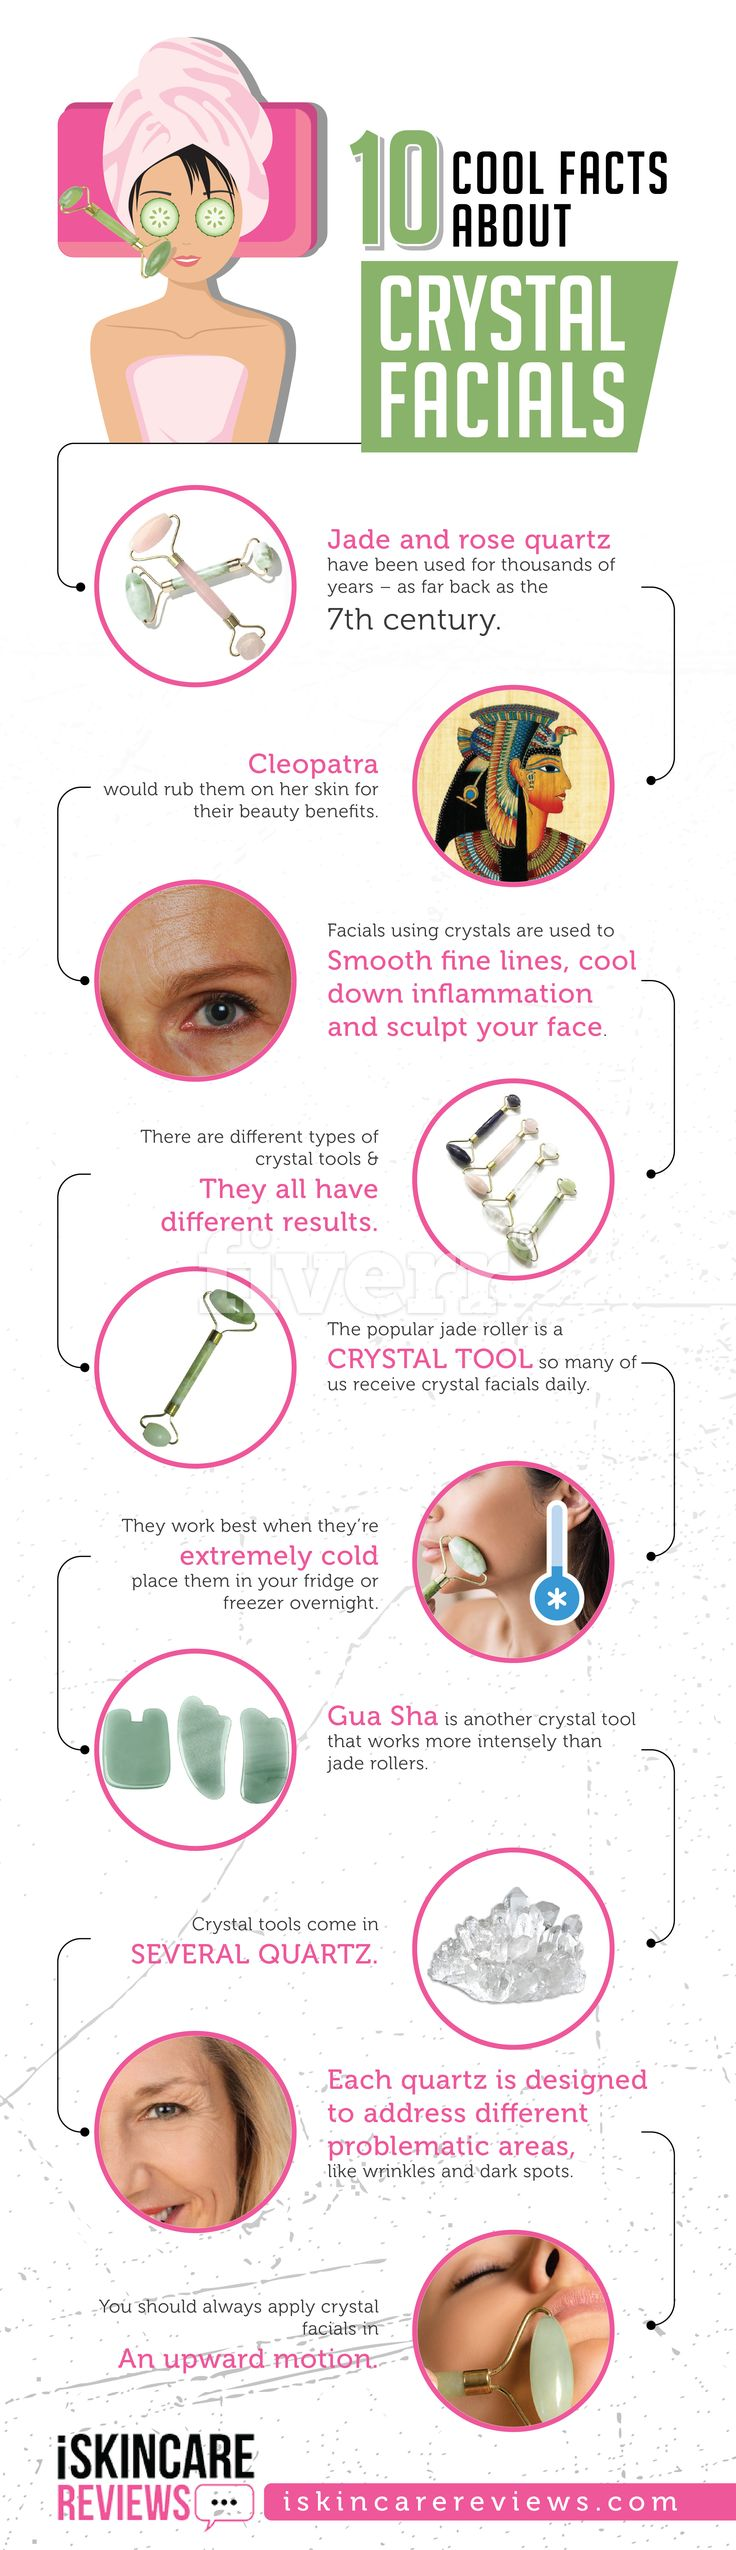 best everything beauty images on pinterest beauty makeup